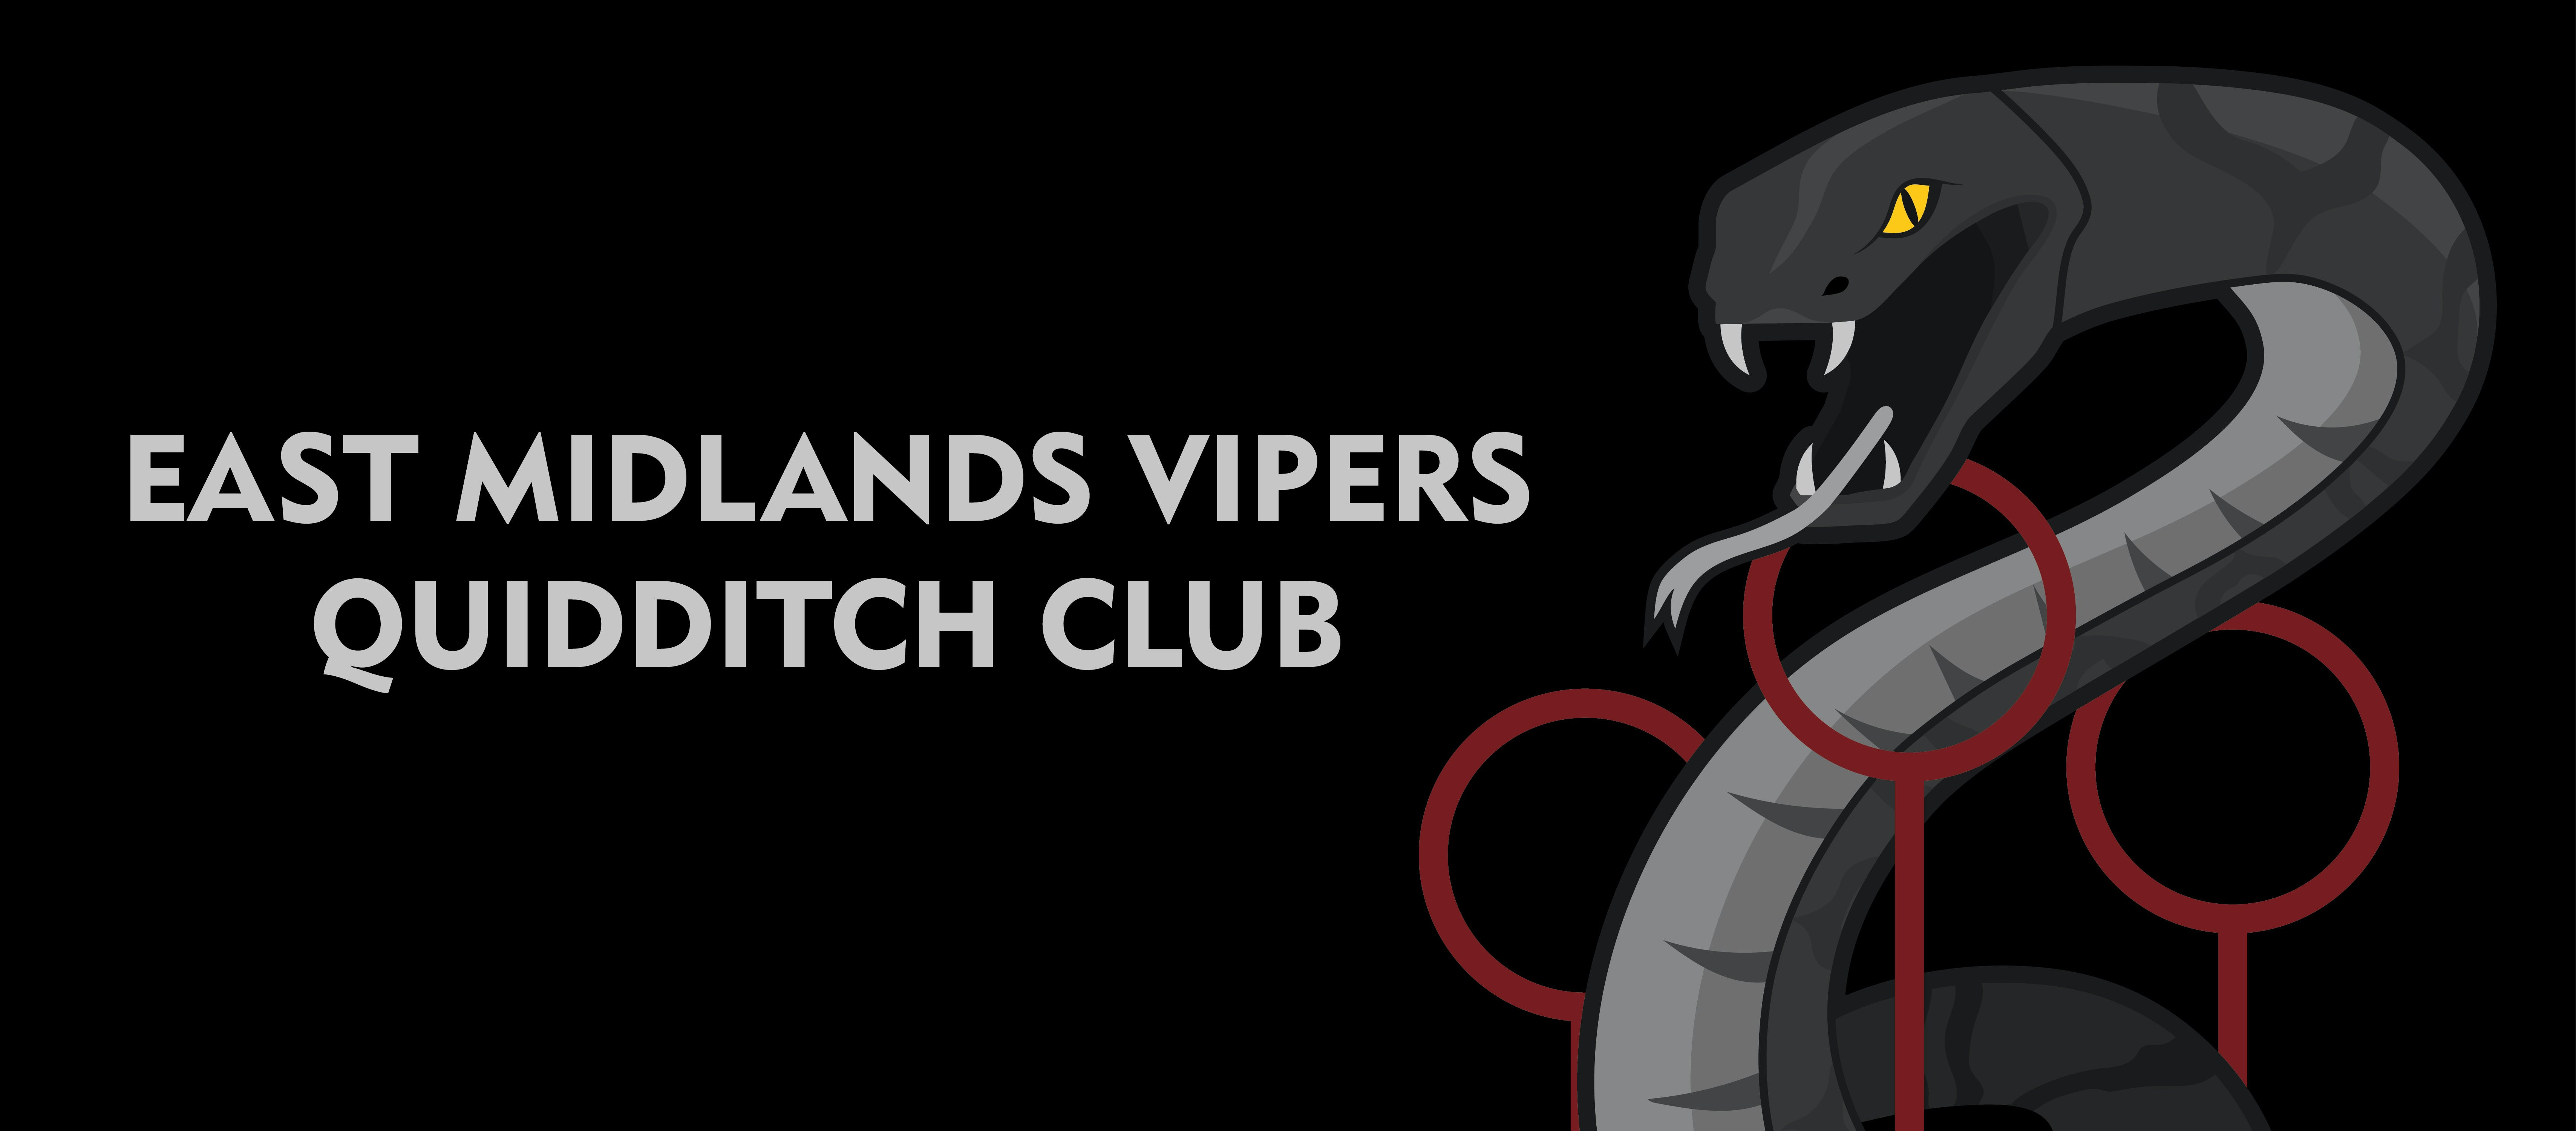 East Midlands Vipers